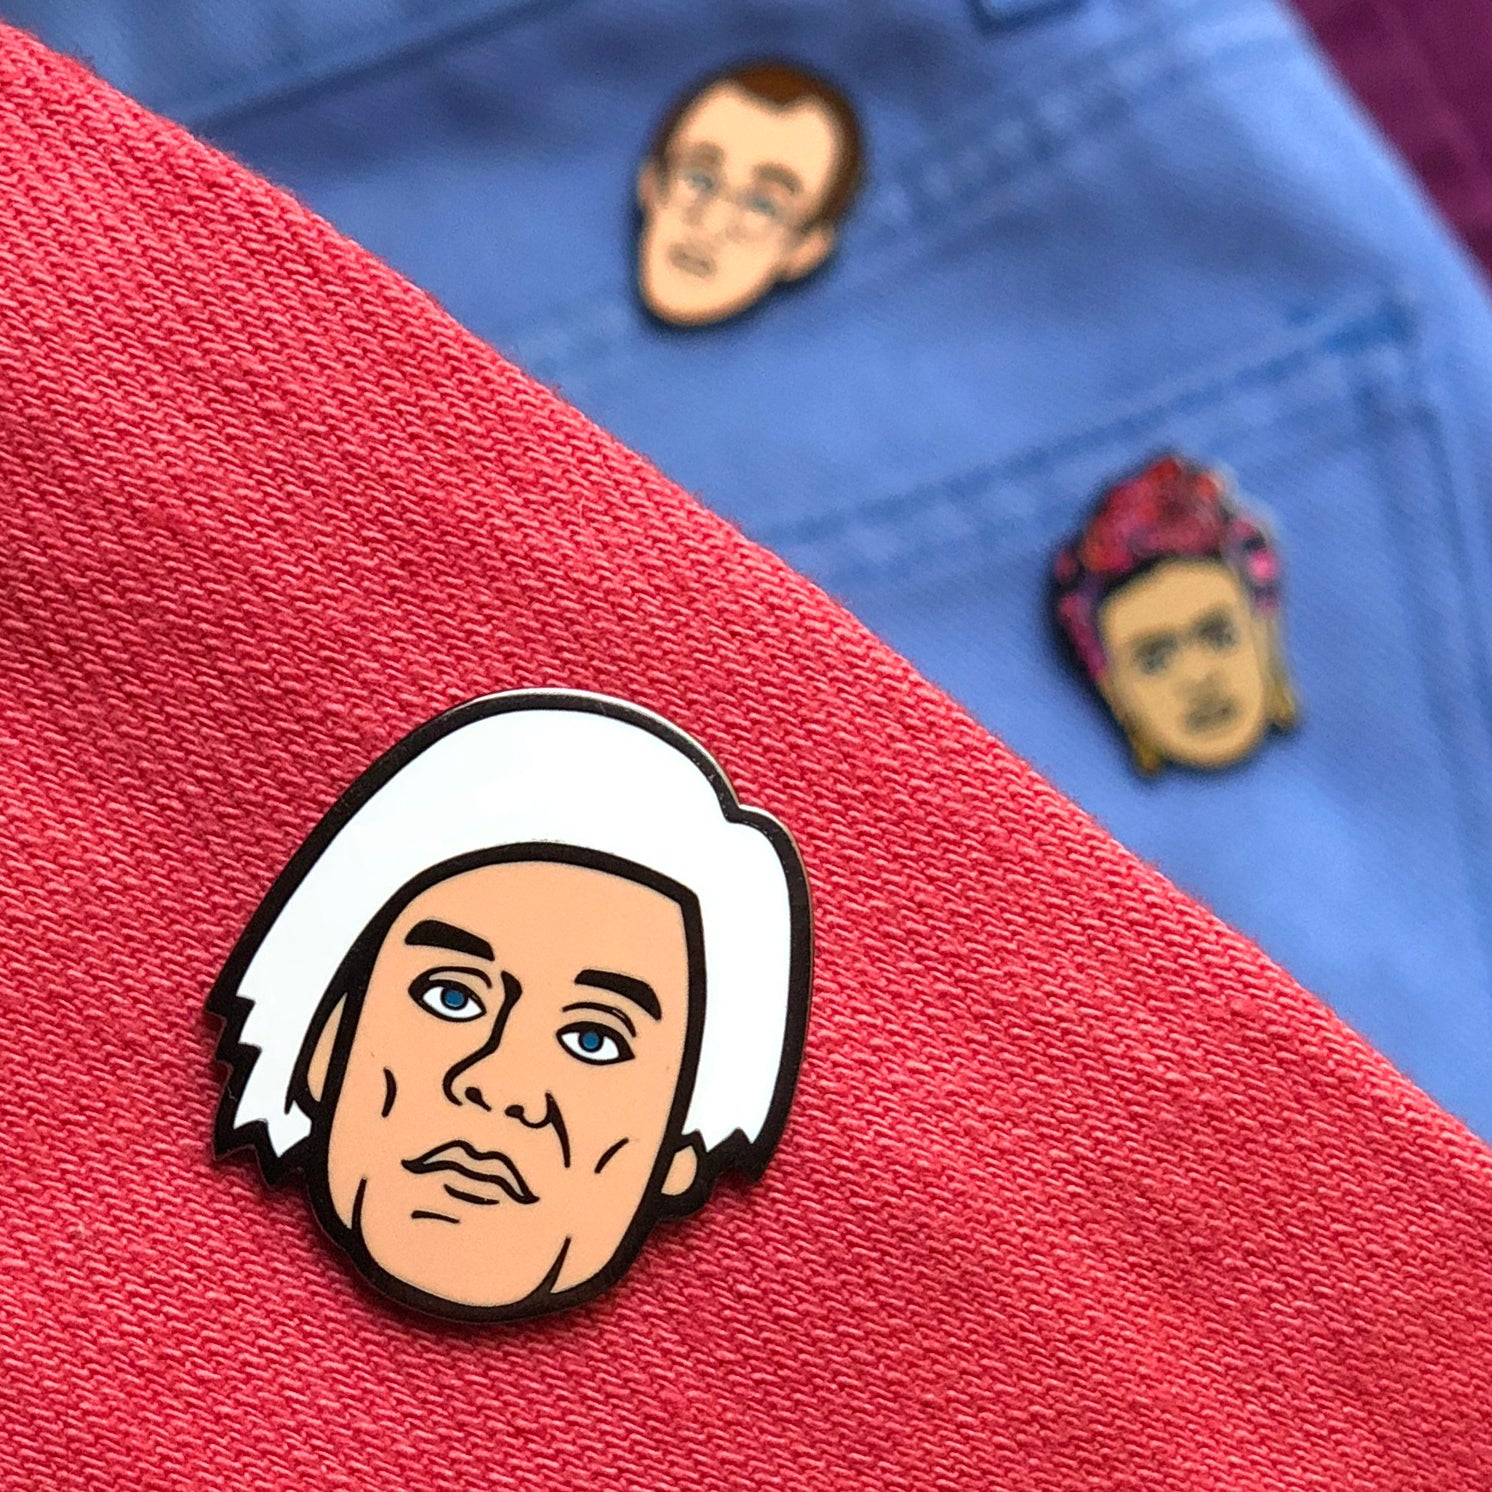 Warhol Pin (by Trevor Wayne)